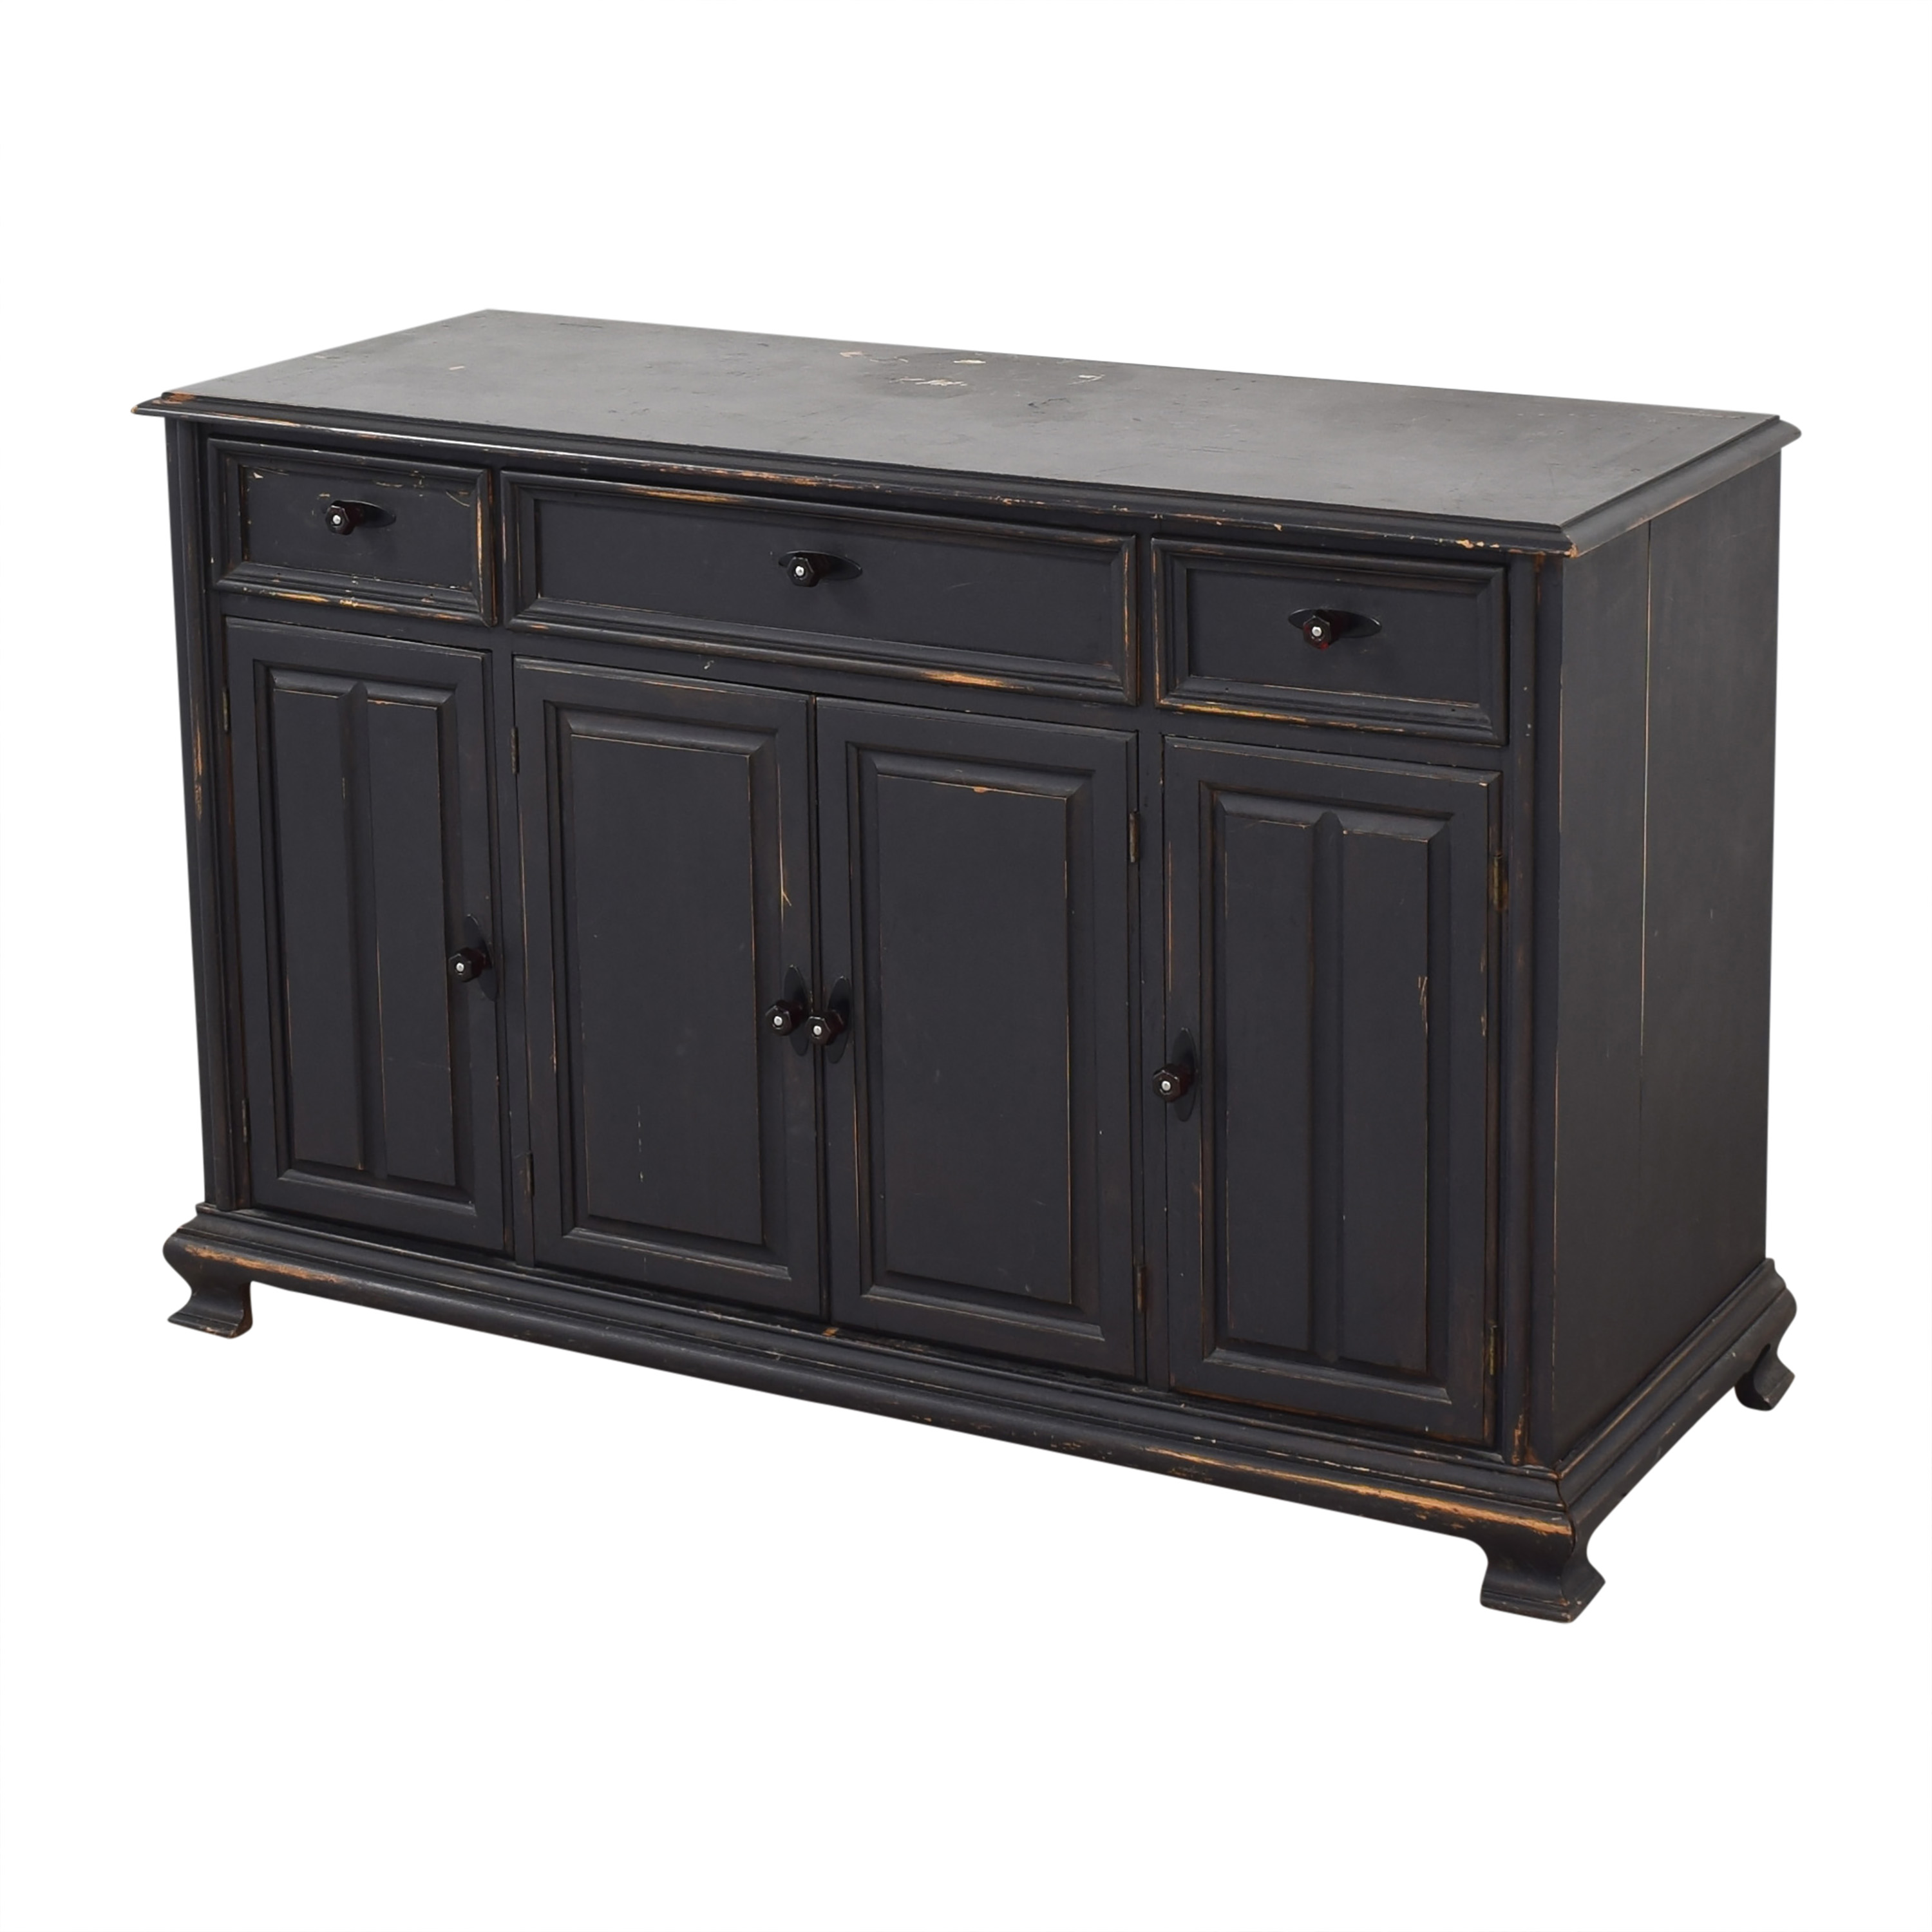 Vintage Weathered Buffet with Cabinets discount